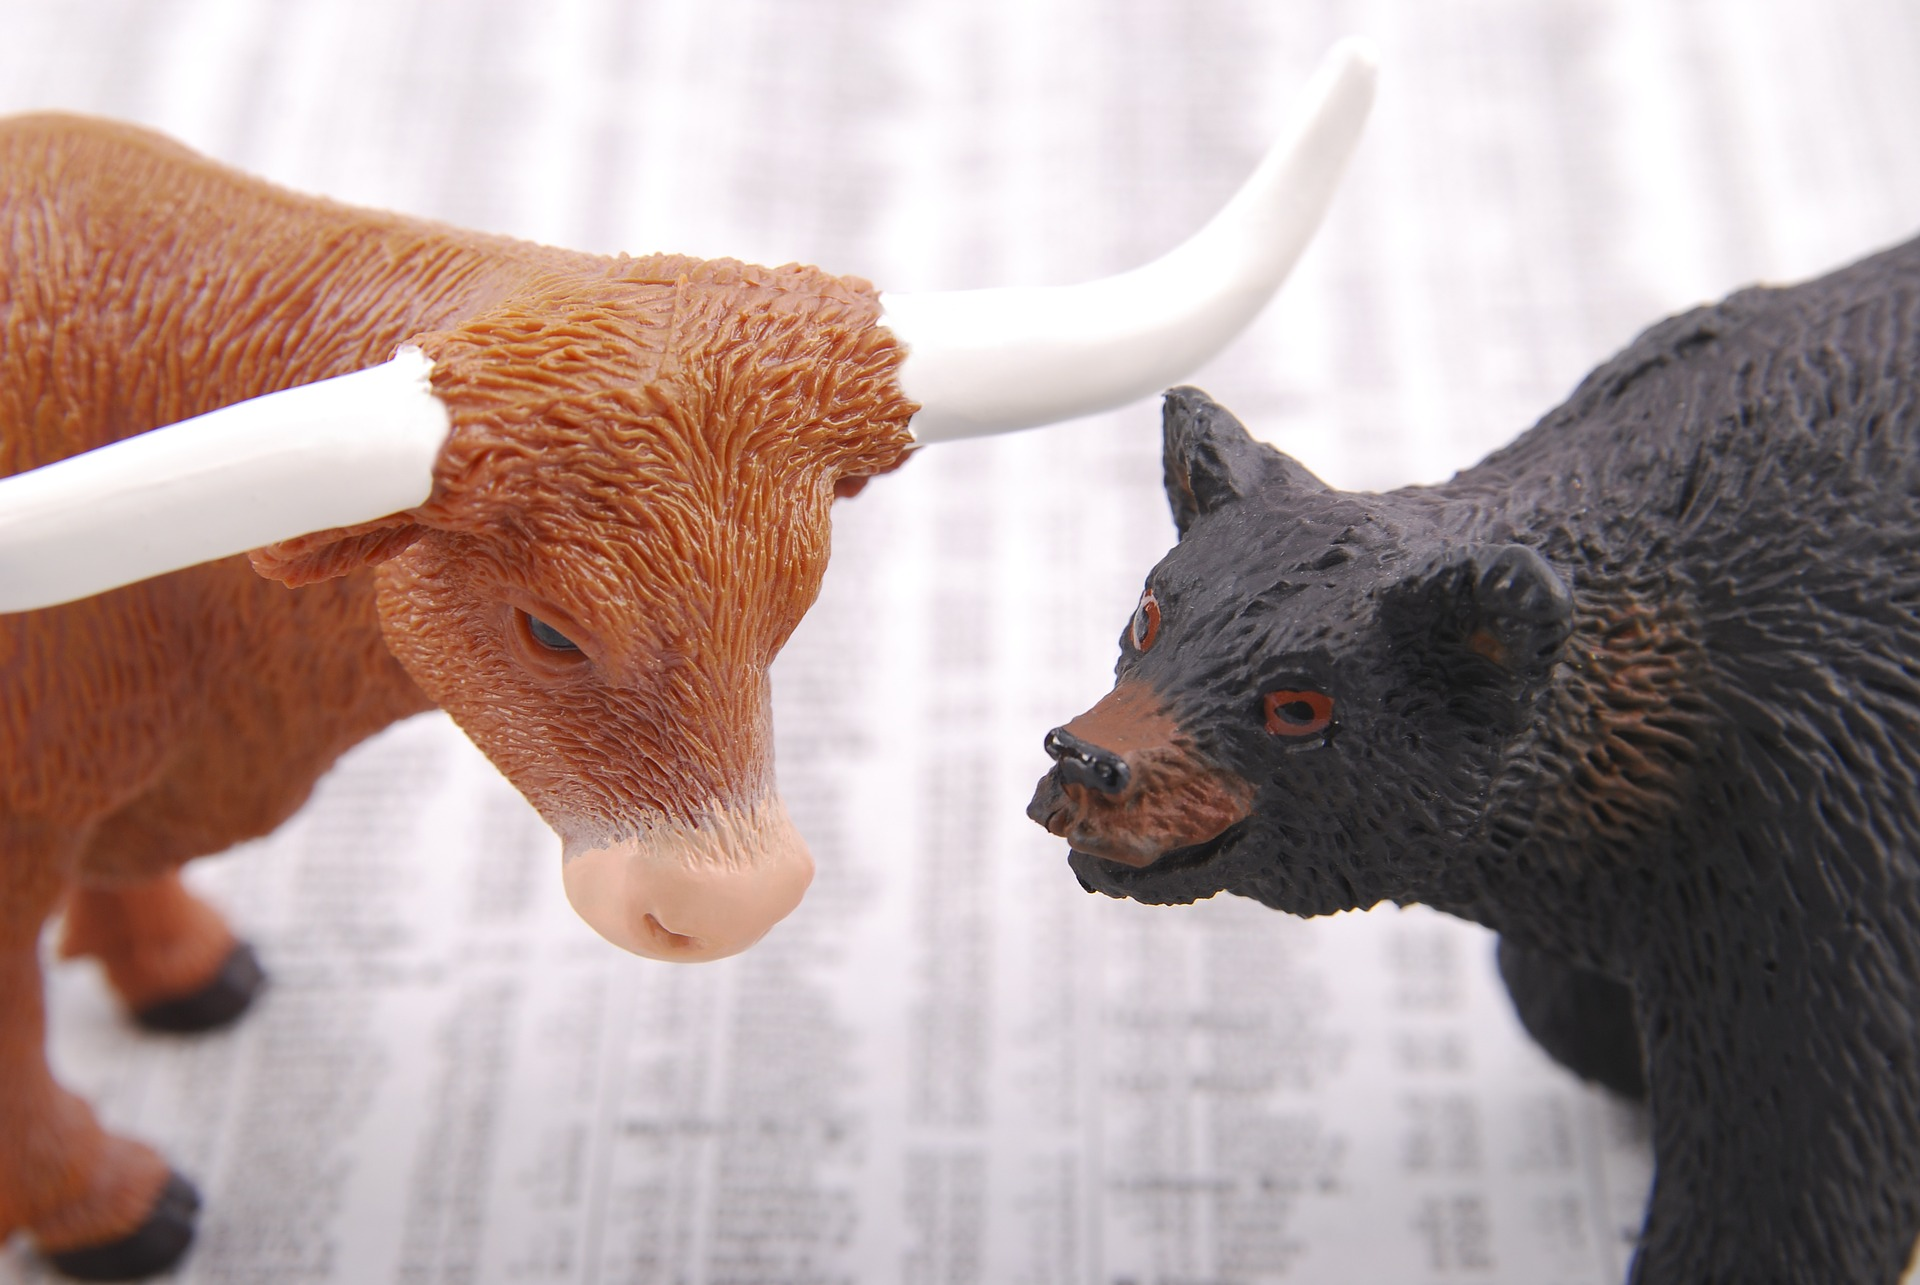 Bull market and Bear market strategies